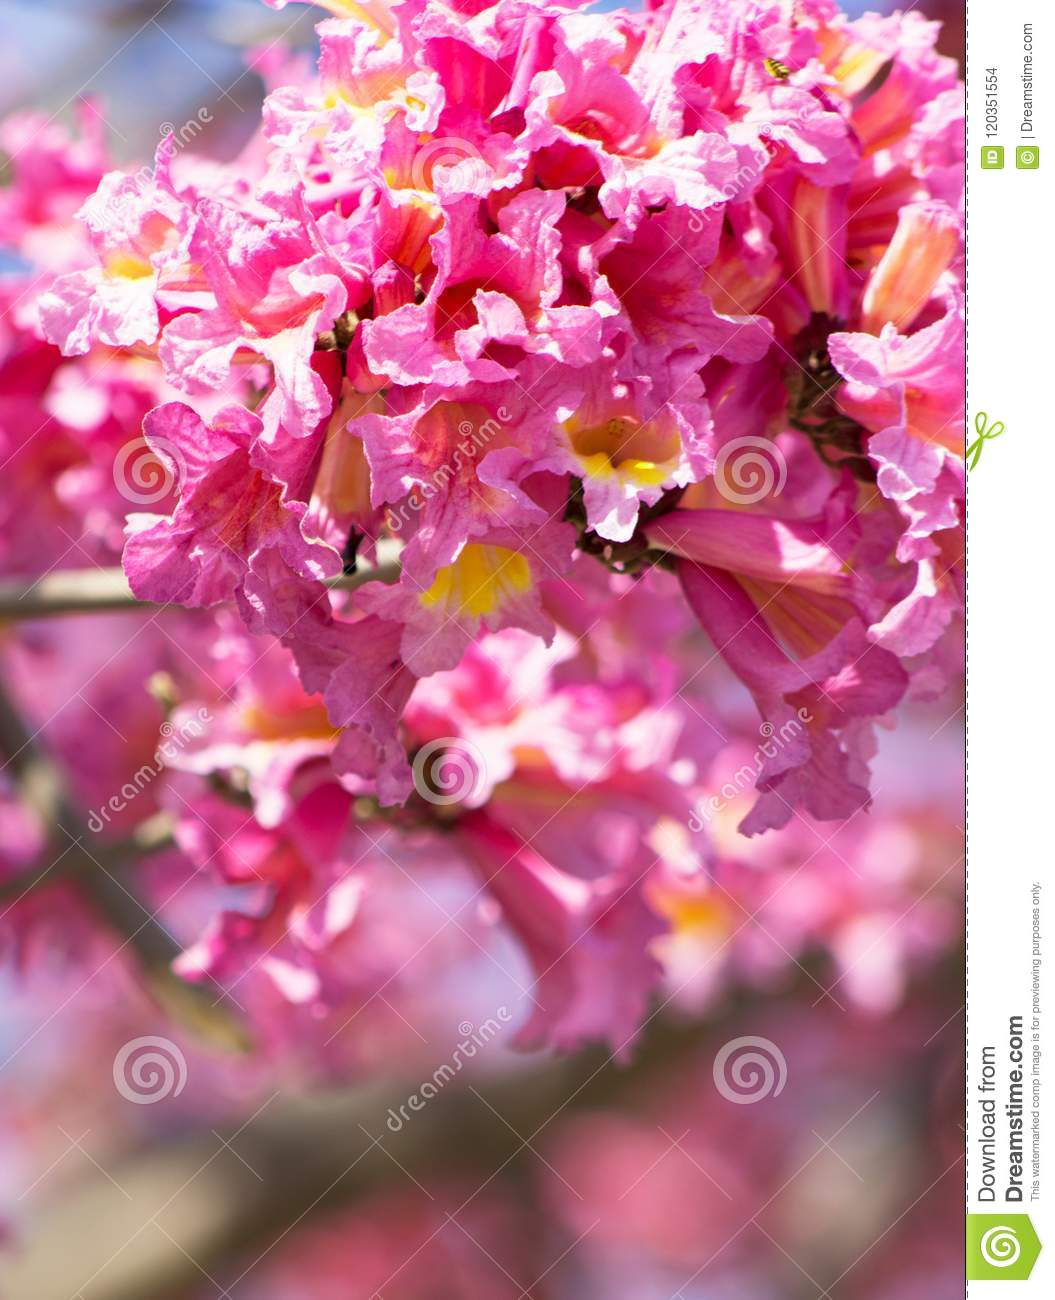 Frilly pink trumpet shaped flowers from tabebuia rosea tree with close up of frilly pink tabebuia tree in full bloom bell shaped trumpet flowers tabebuia rosea bignoniaceae pink trumpet tree mightylinksfo